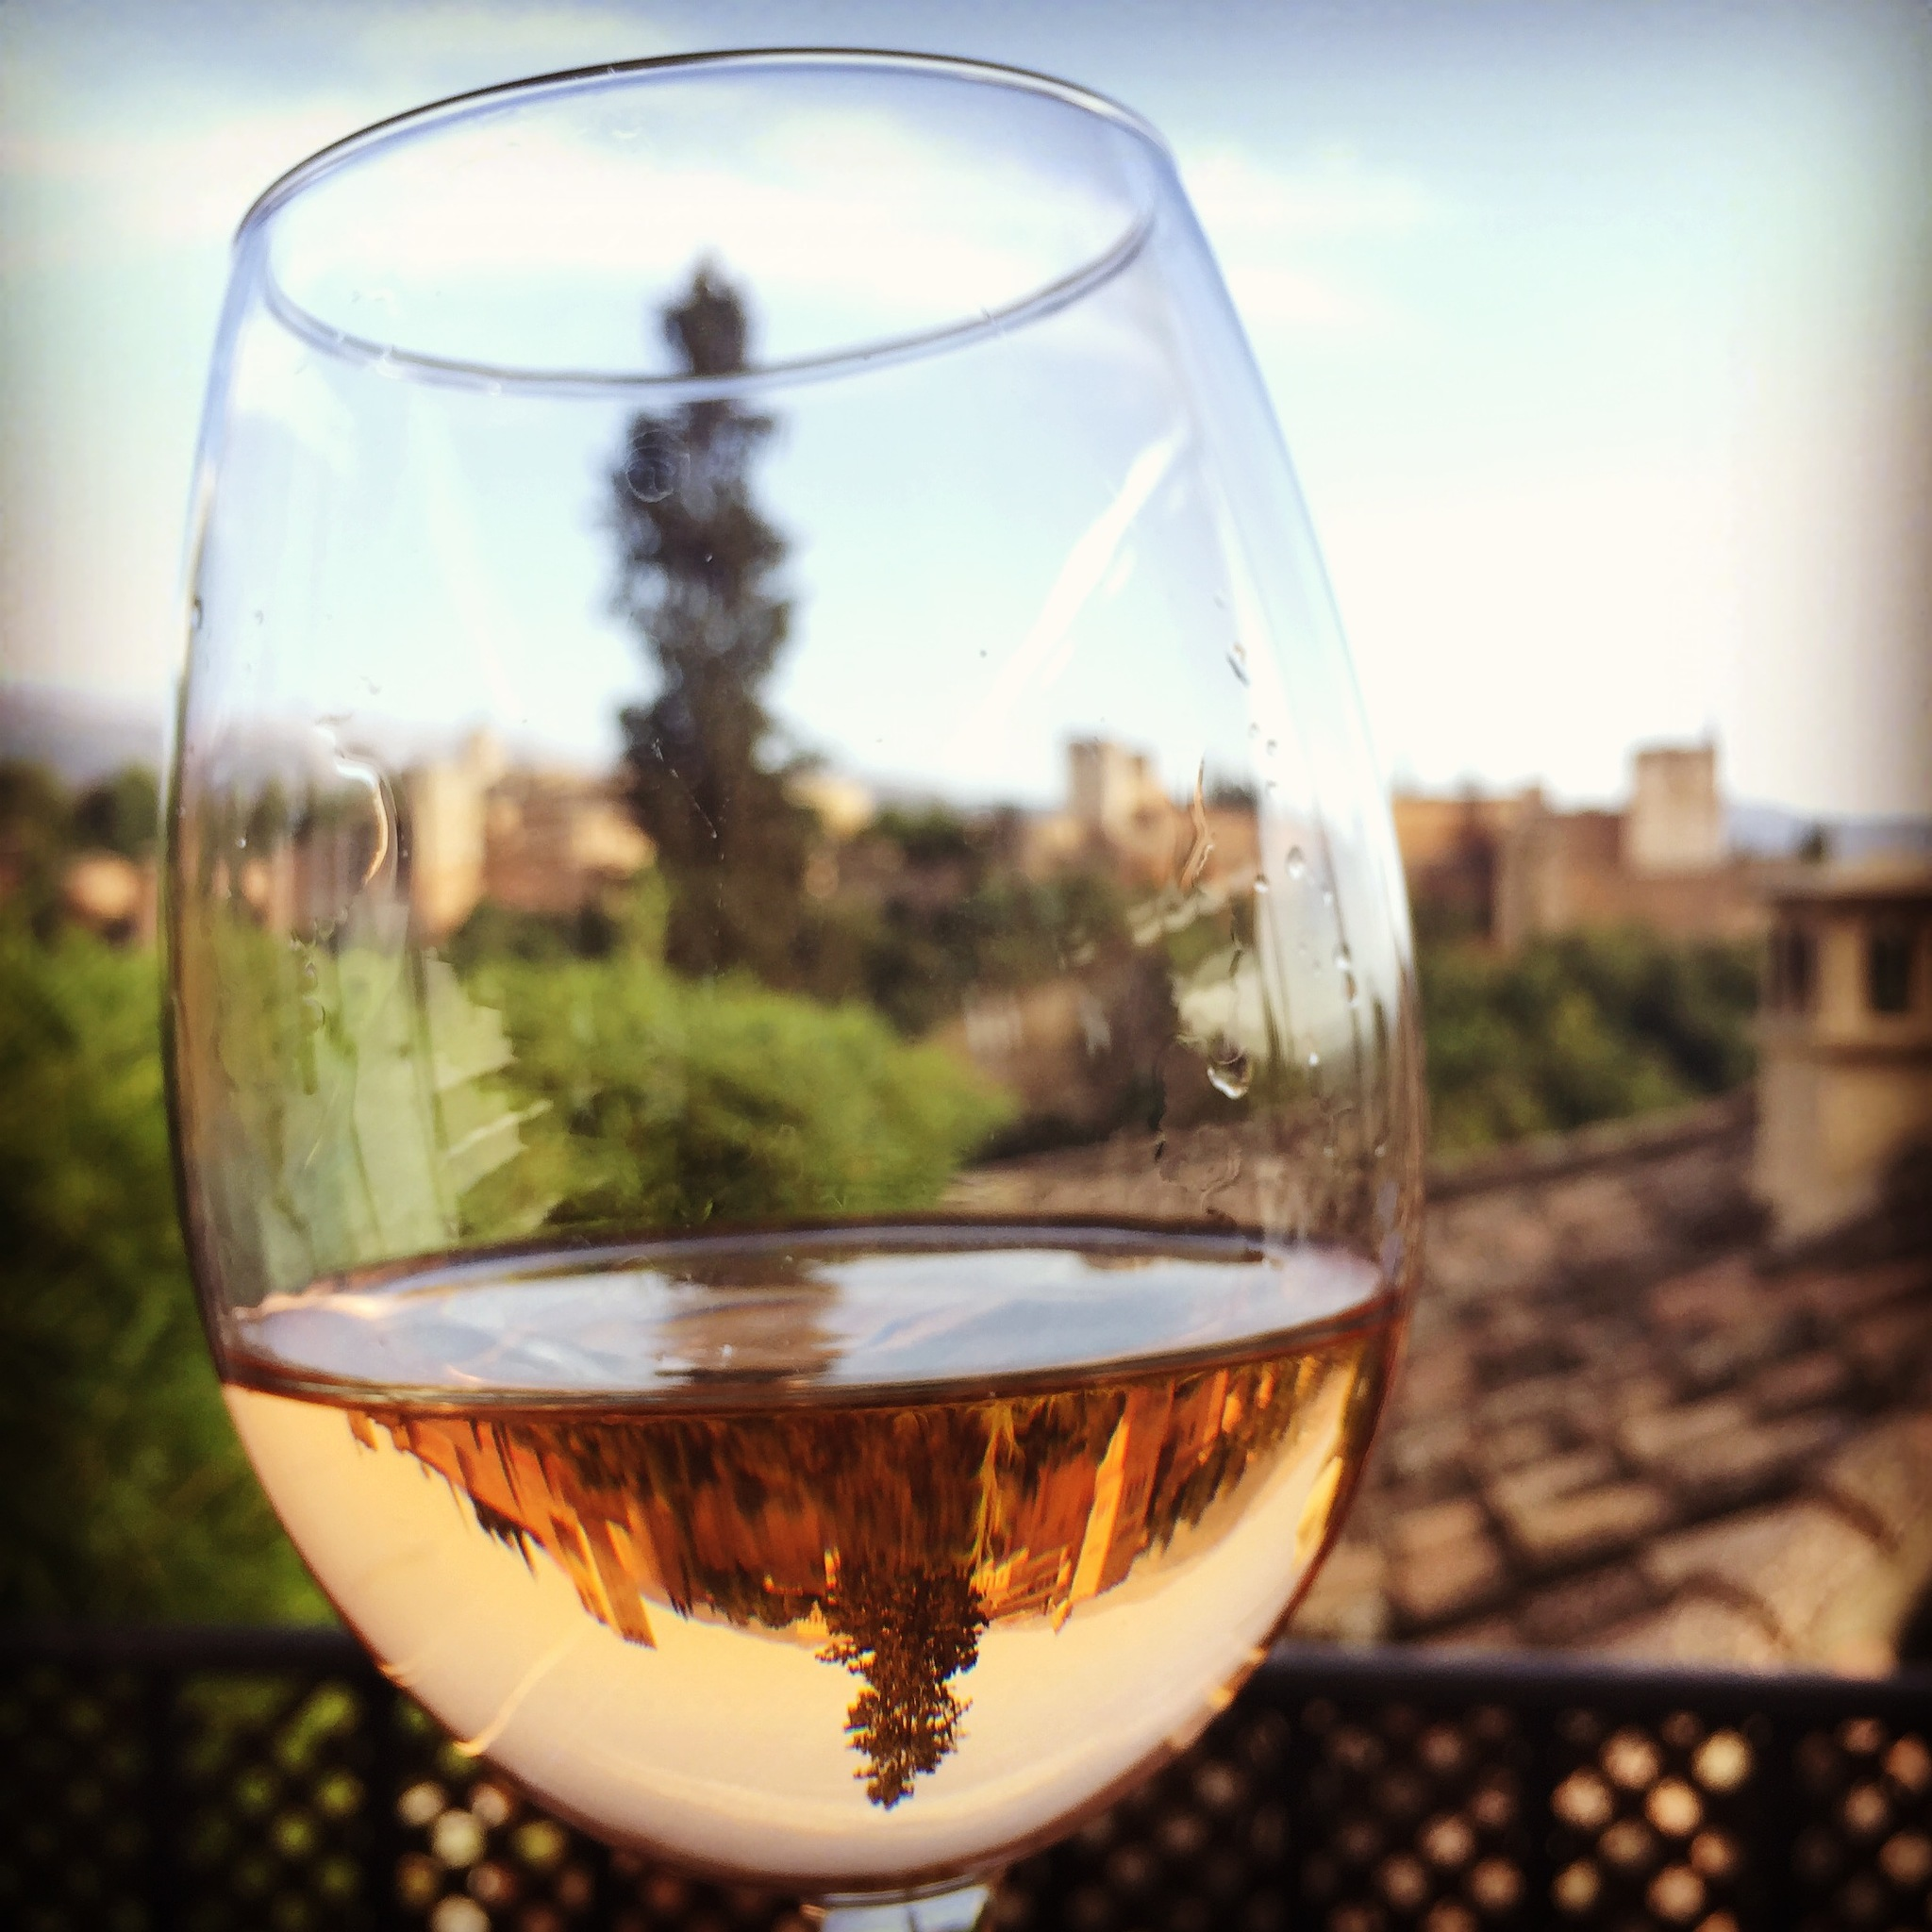 La Alhambra of Granada Spain seen through a glass of sweet Rose Wine  by Marlene Krebs